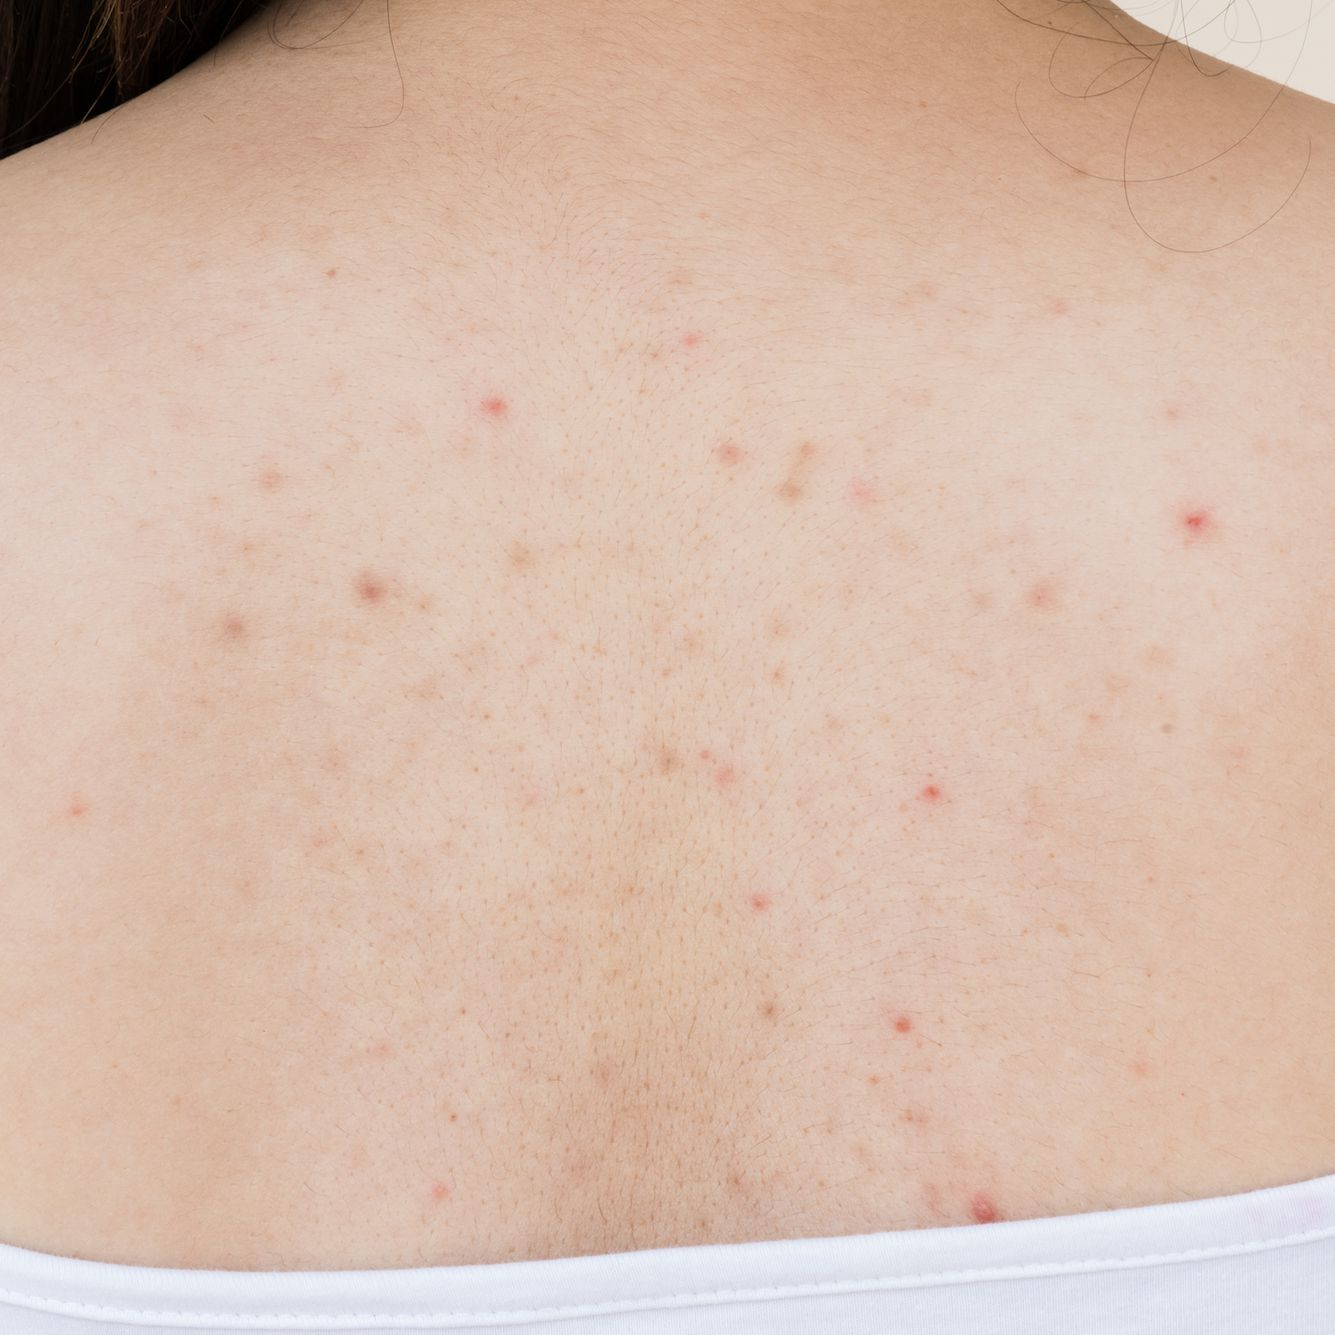 How To Treat Back Acne And Body Acne